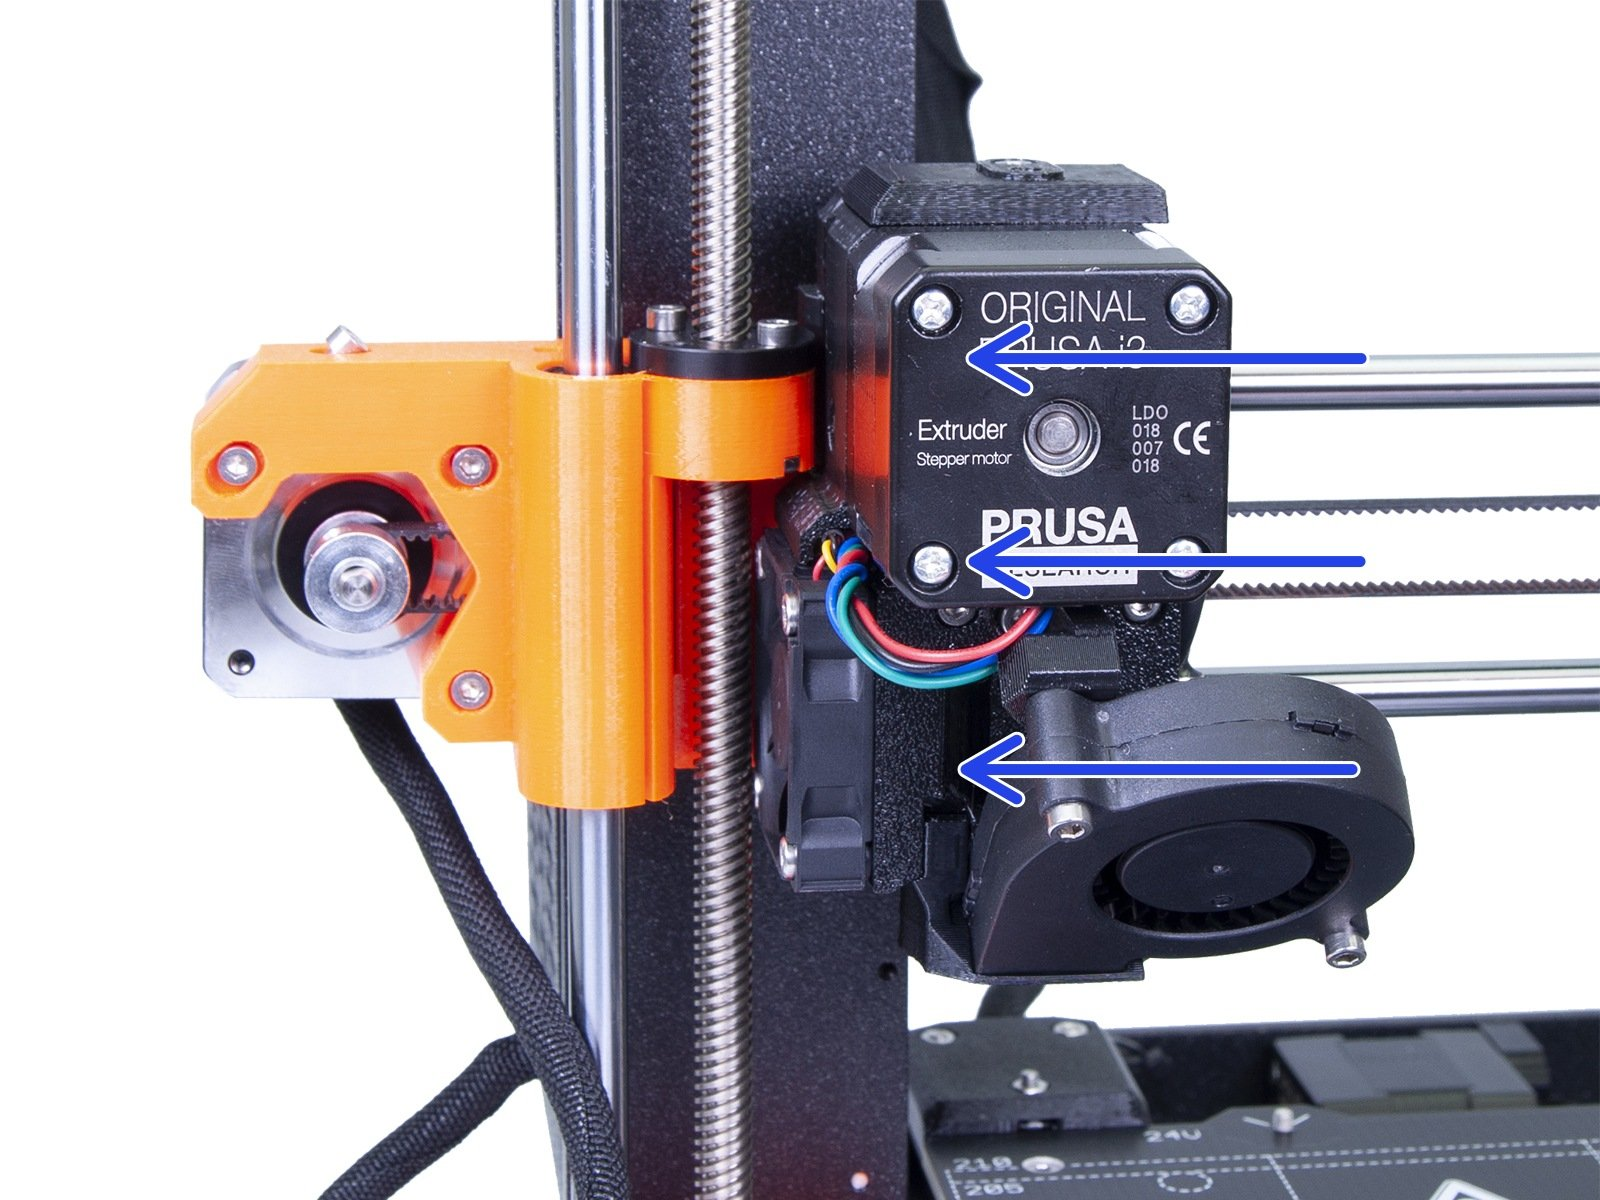 principle of updating the firmware of the printer